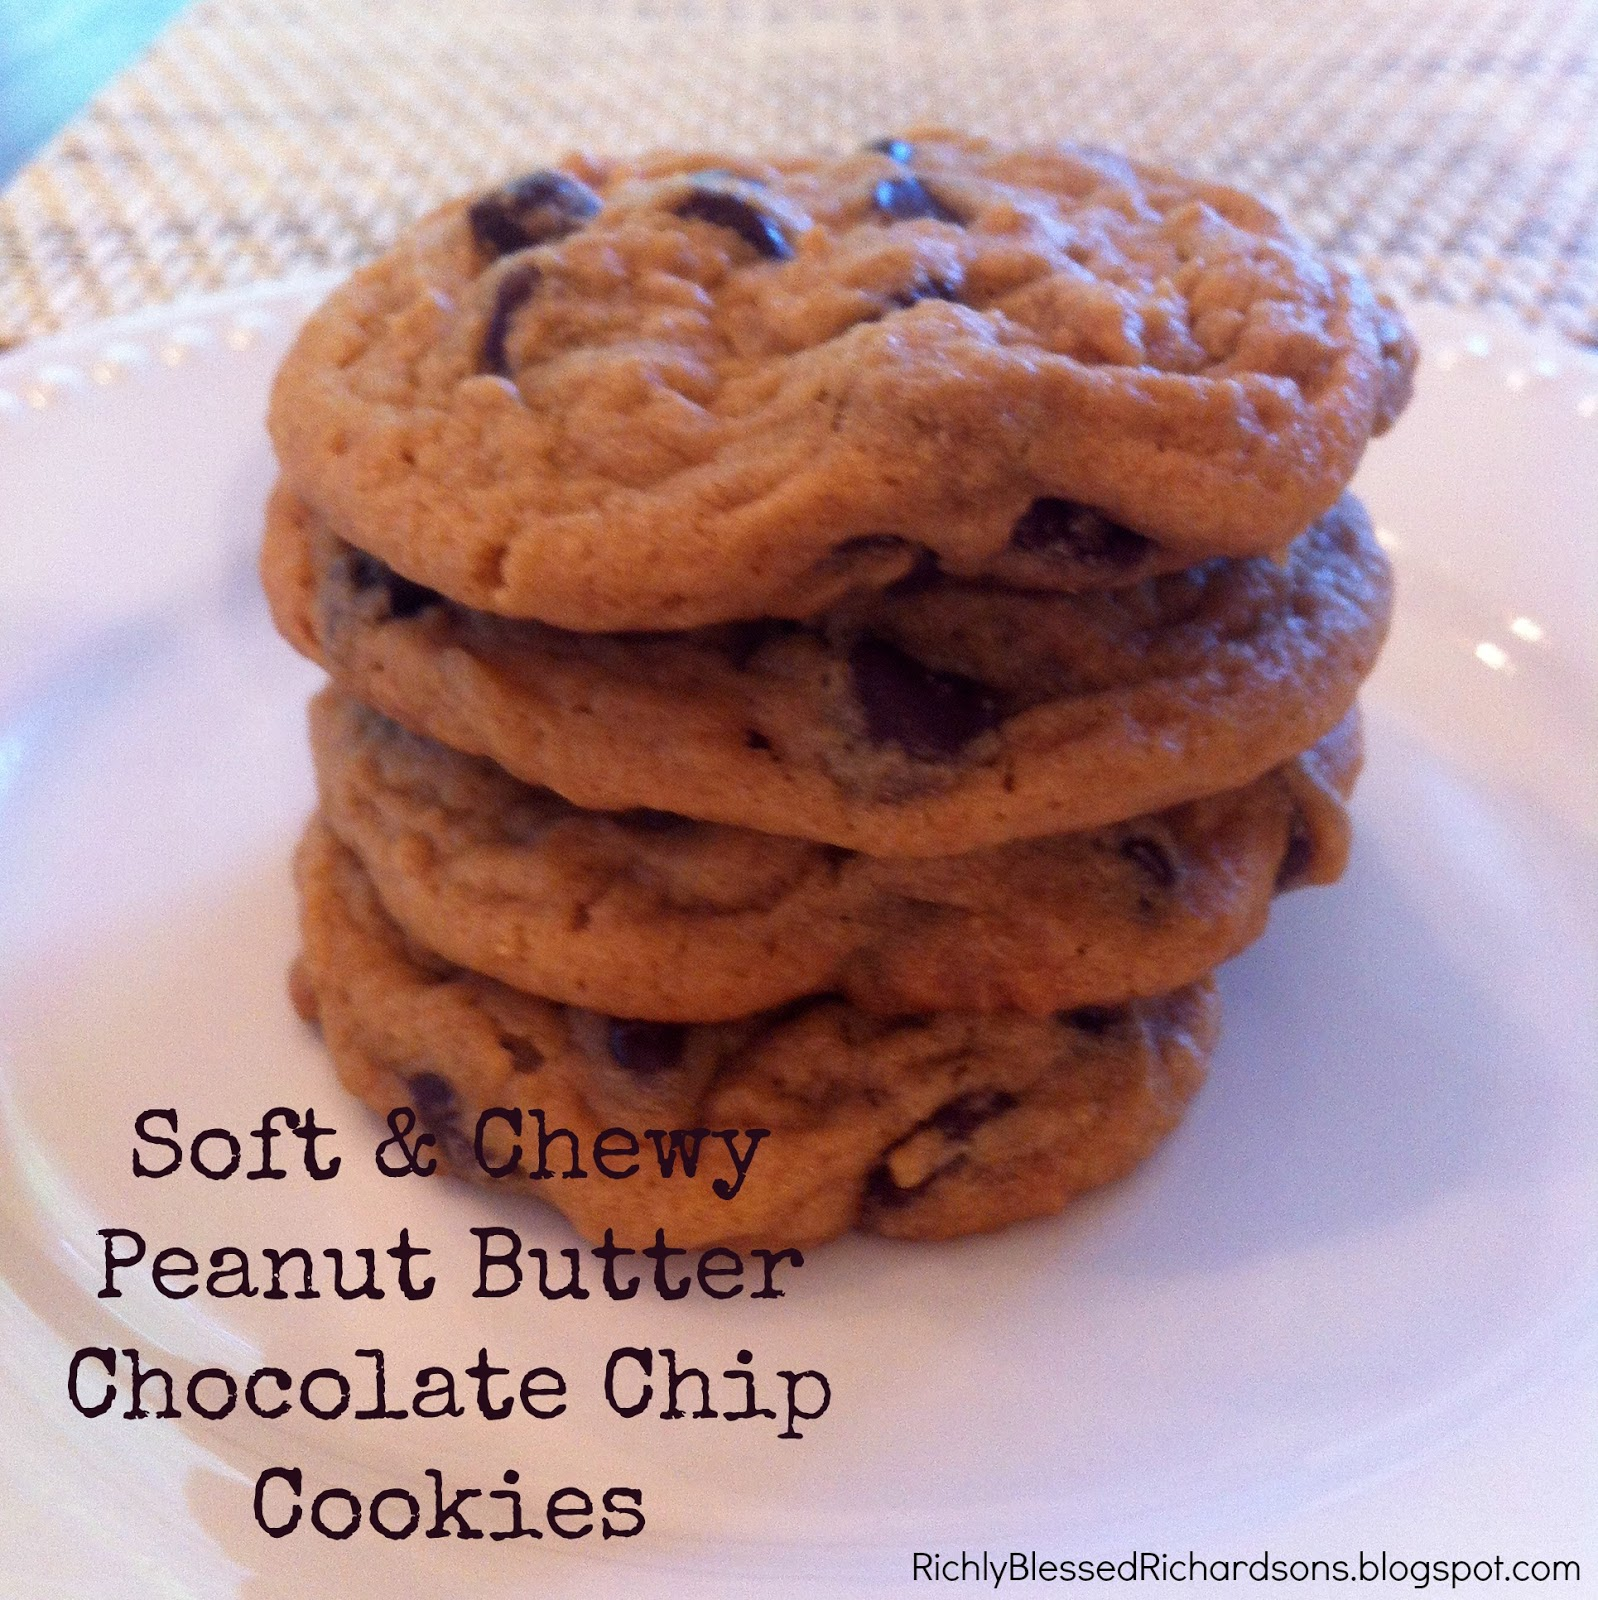 Richly Blessed: Soft & Chewy Peanut Butter Chocolate Chip Cookies